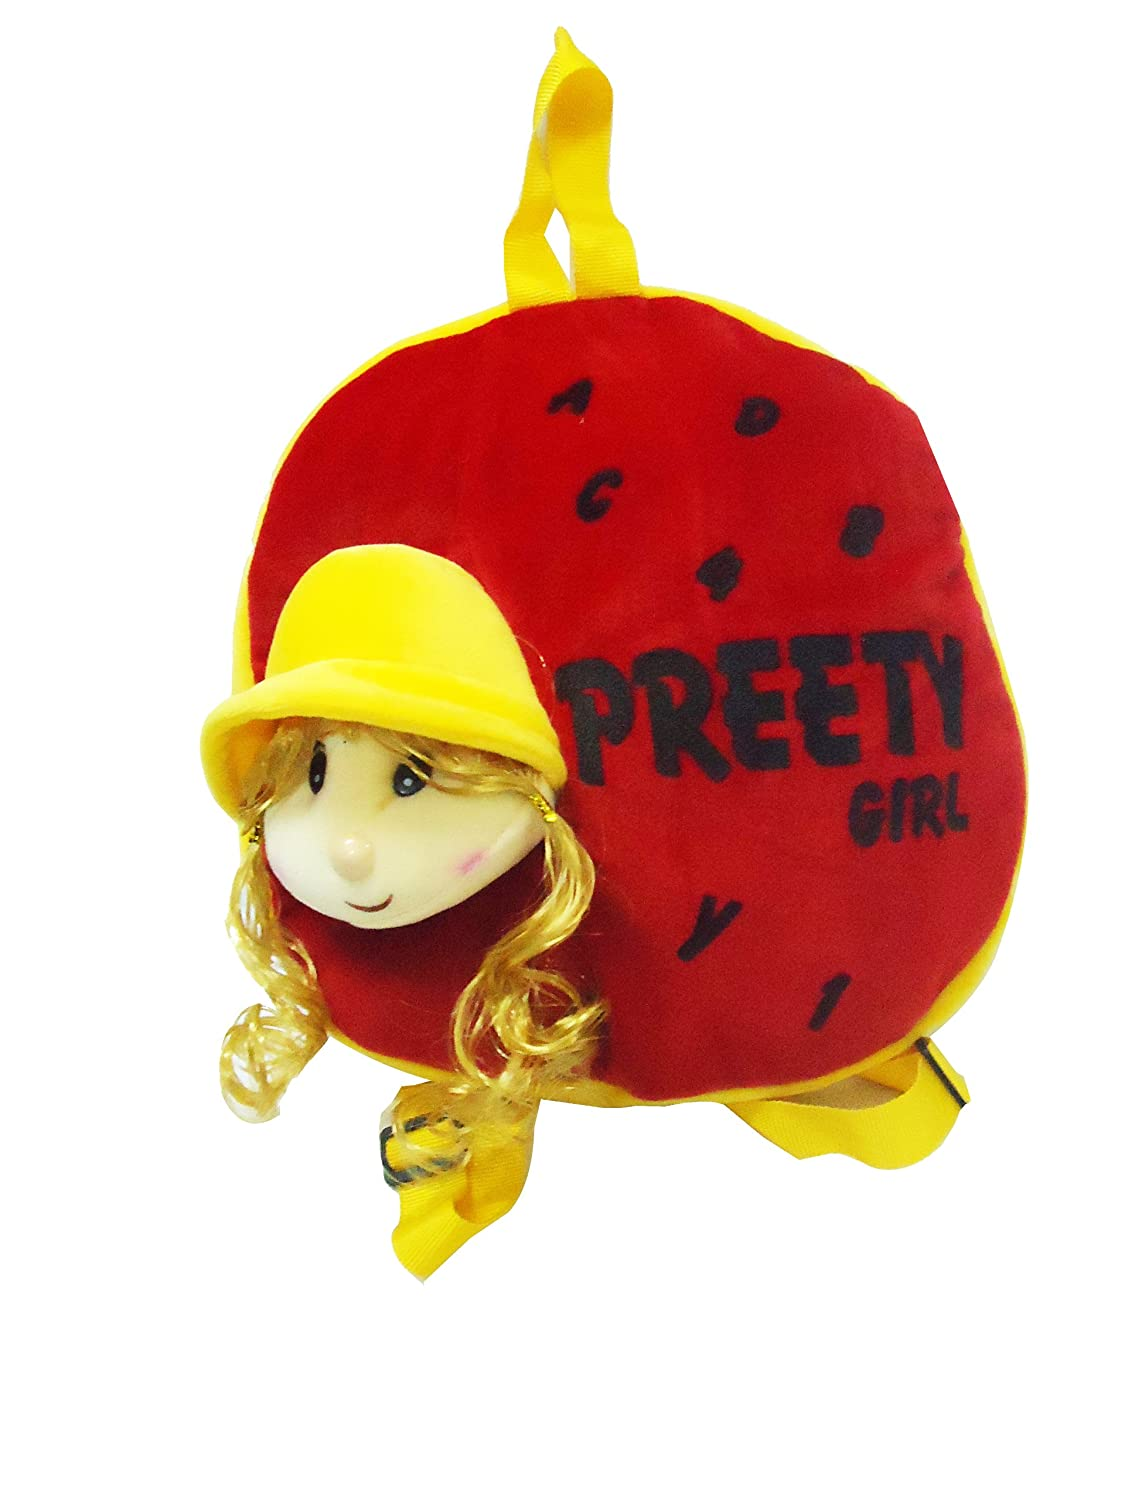 Buy Hello Toys Pretty Girl Bag Online at Low Prices in India - Amazon.in defe90864f